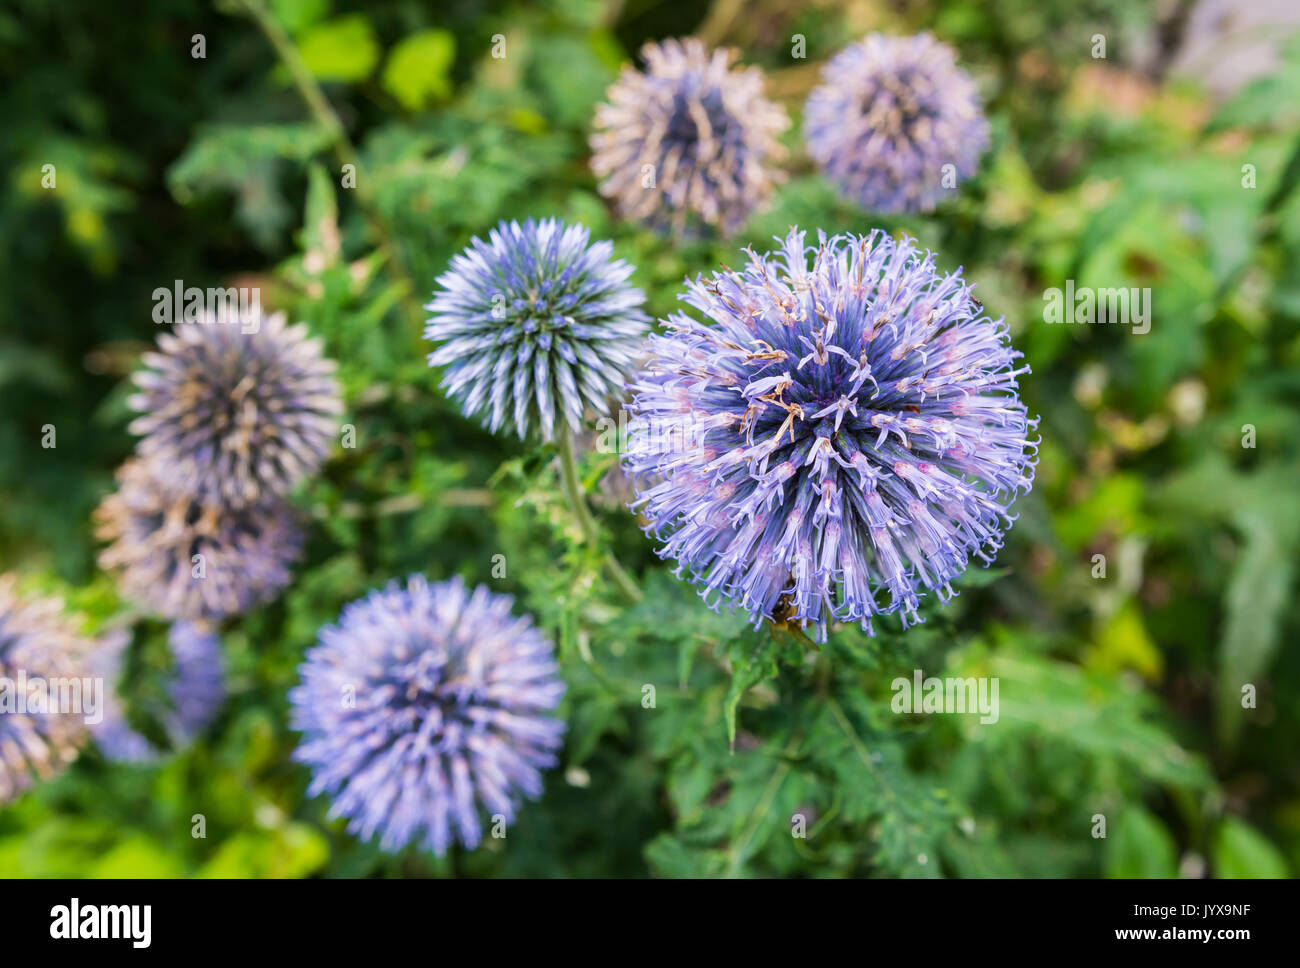 Echinops ritro plant, also known as Southern globethistle, a perennial thistle growing in Summer in West Sussex, England, UK. - Stock Image